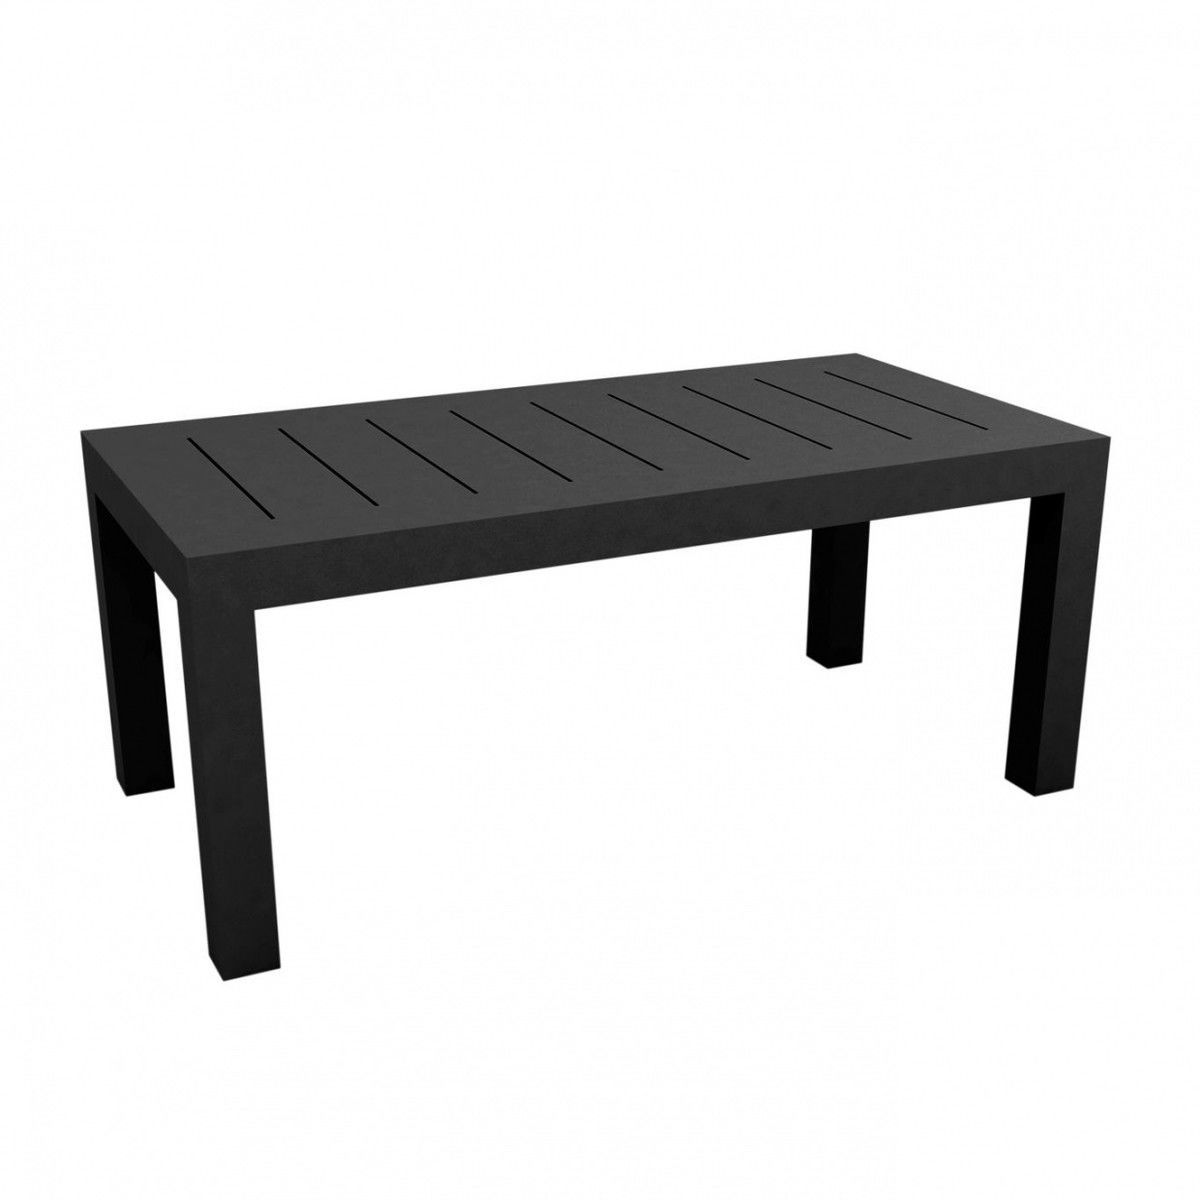 jut table 180cm vondom meubles de jardin en plastique. Black Bedroom Furniture Sets. Home Design Ideas